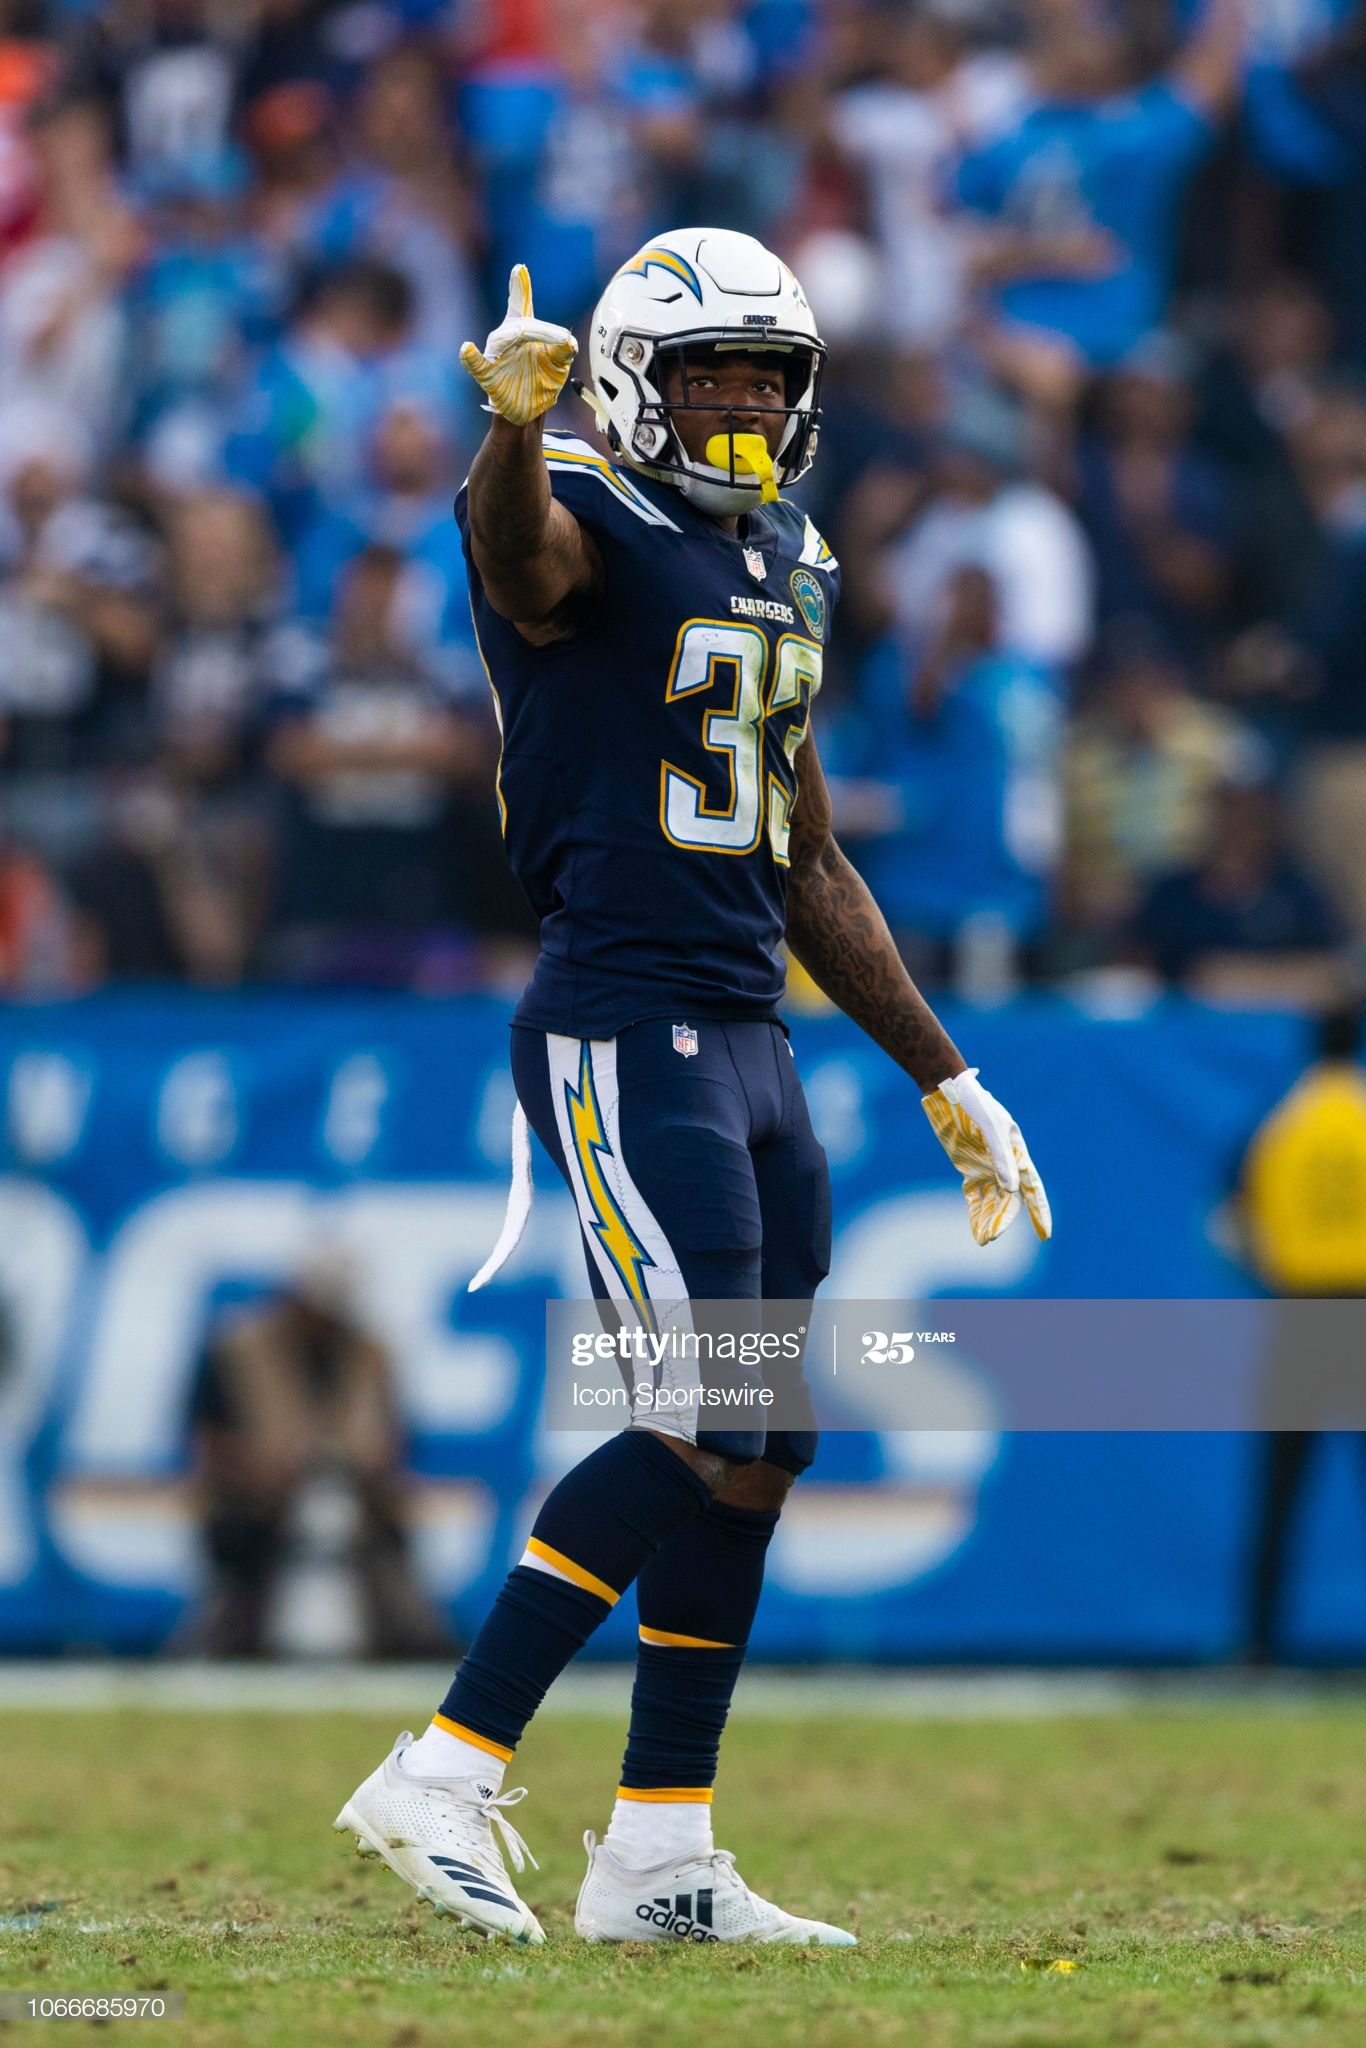 Los Angeles Chargers Free Safety Derwin James During The Nfl Regular In 2020 Los Angeles Chargers Sports Tshirt Designs Chargers Football